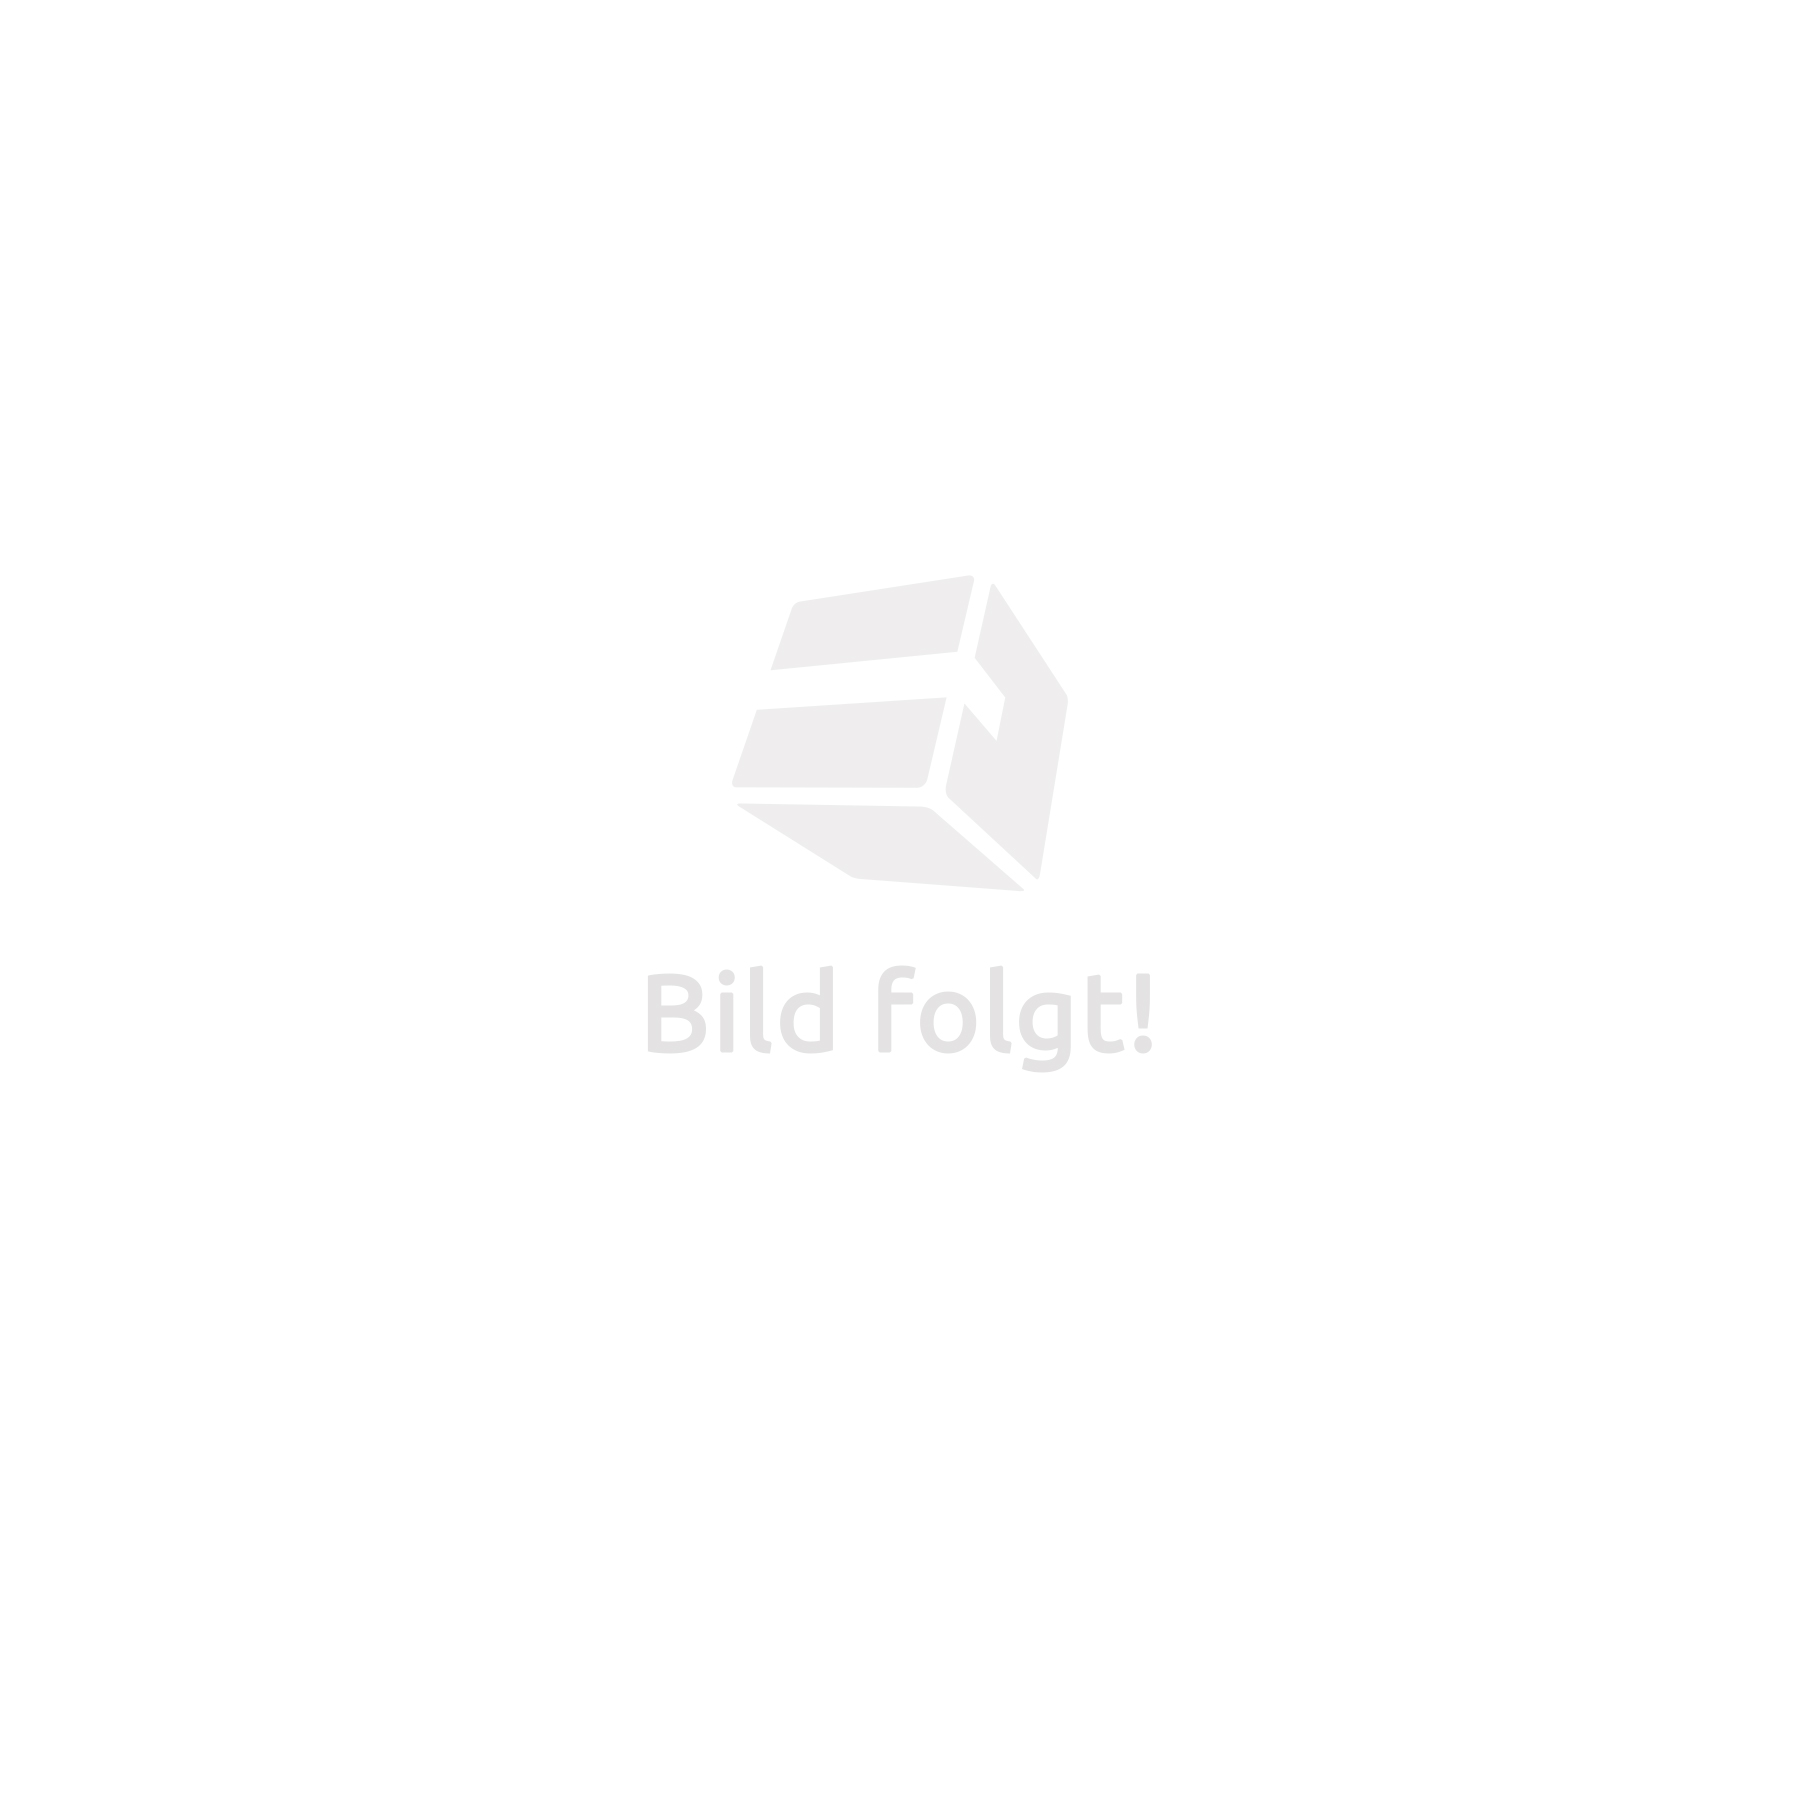 140x200 cm schlafzimmerbett metallbett bettgestell bett. Black Bedroom Furniture Sets. Home Design Ideas